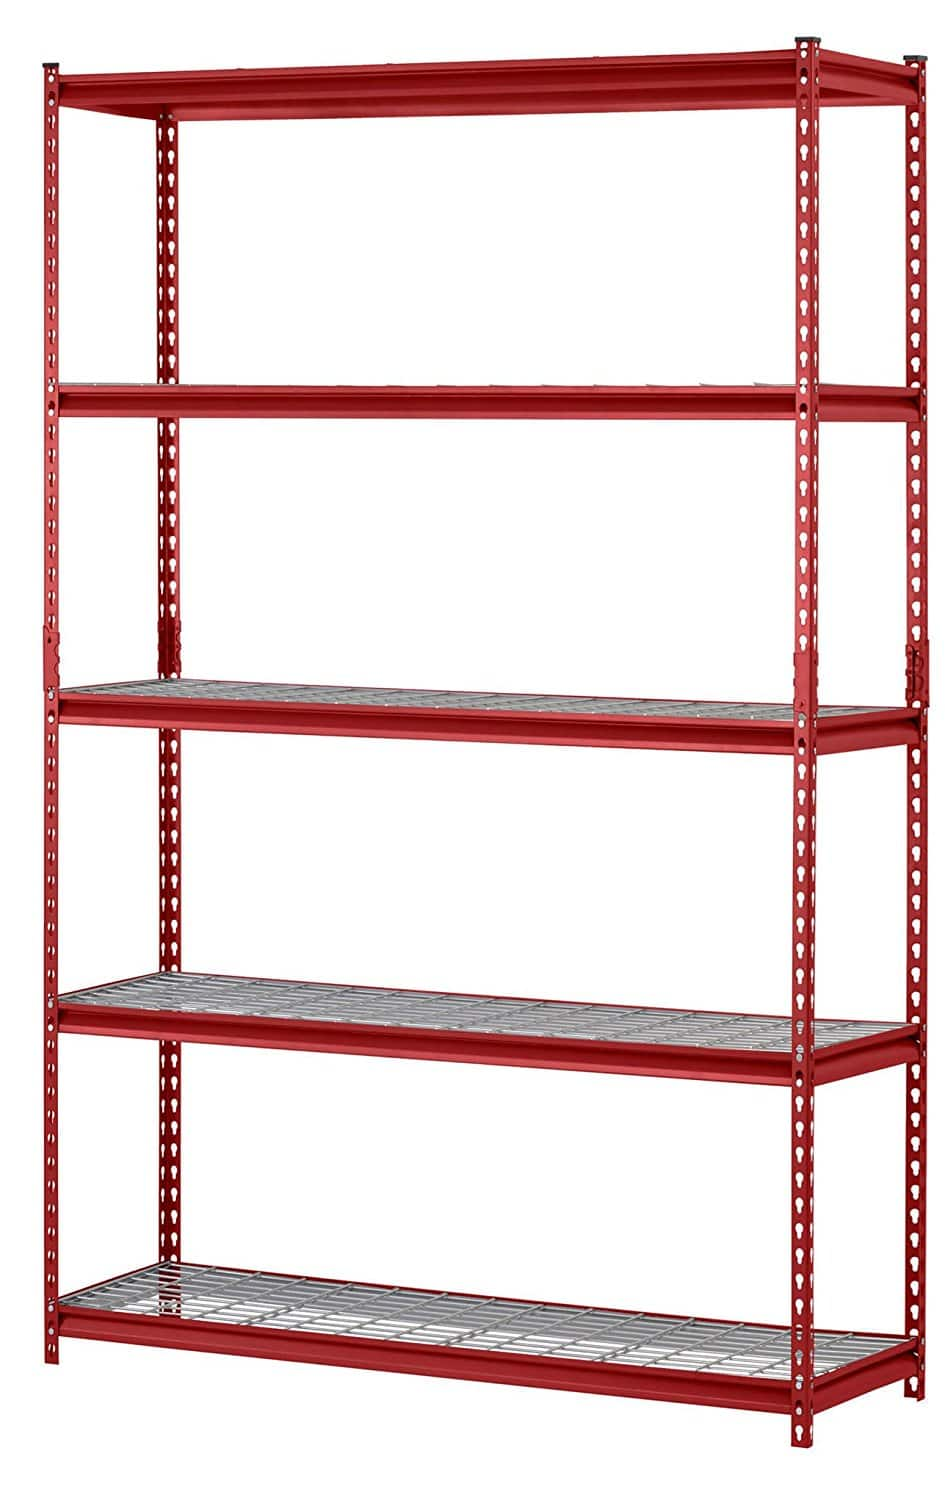 "Muscle Rack 5-Shelf Steel Shelving Unit, 48"" Width x 72"" Height x 18"" Length, Red $52.61"